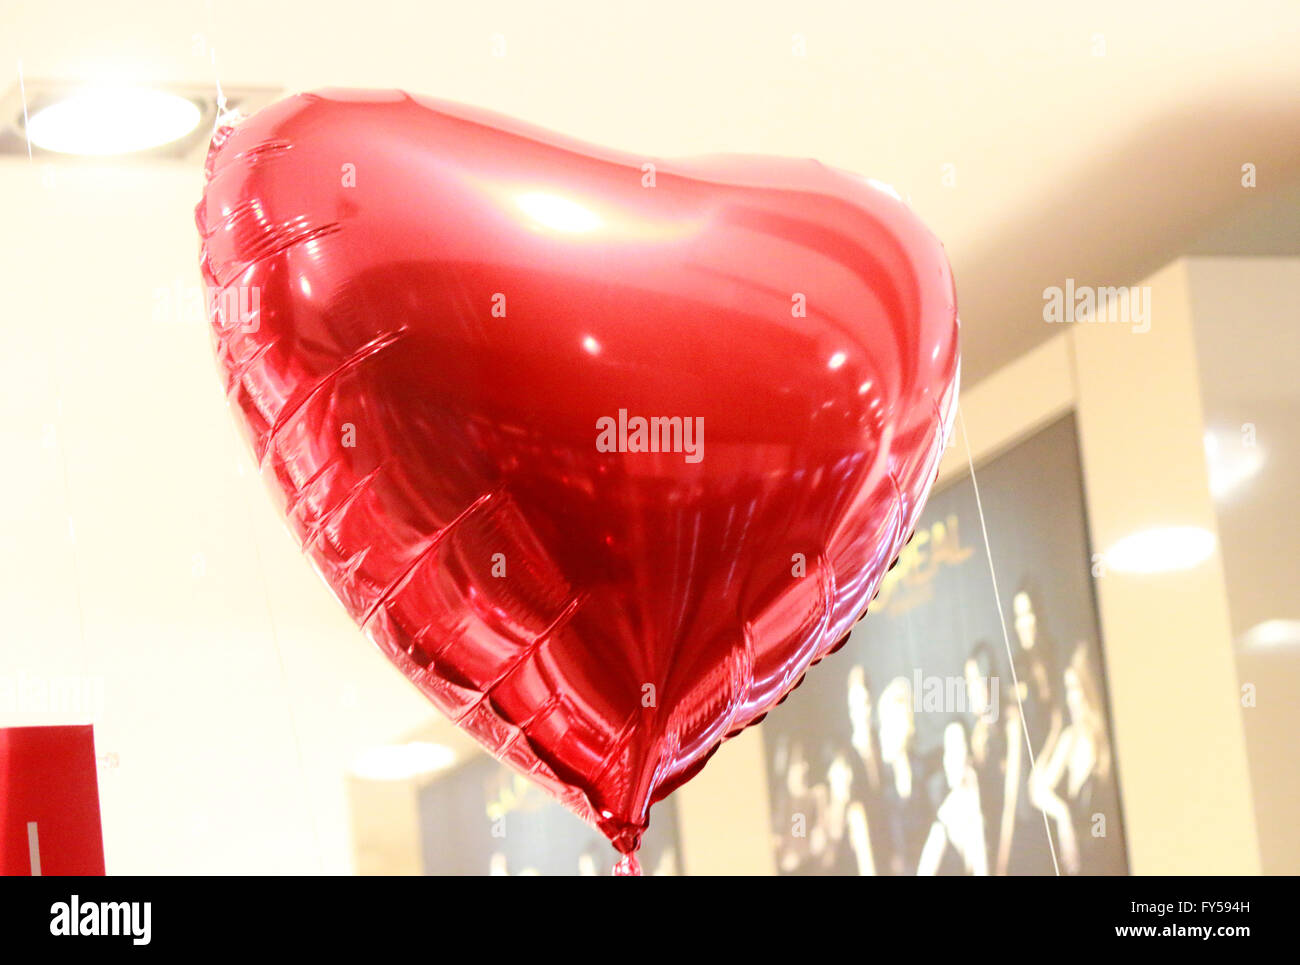 Herz-Ballon, Berlin. - Stock Image